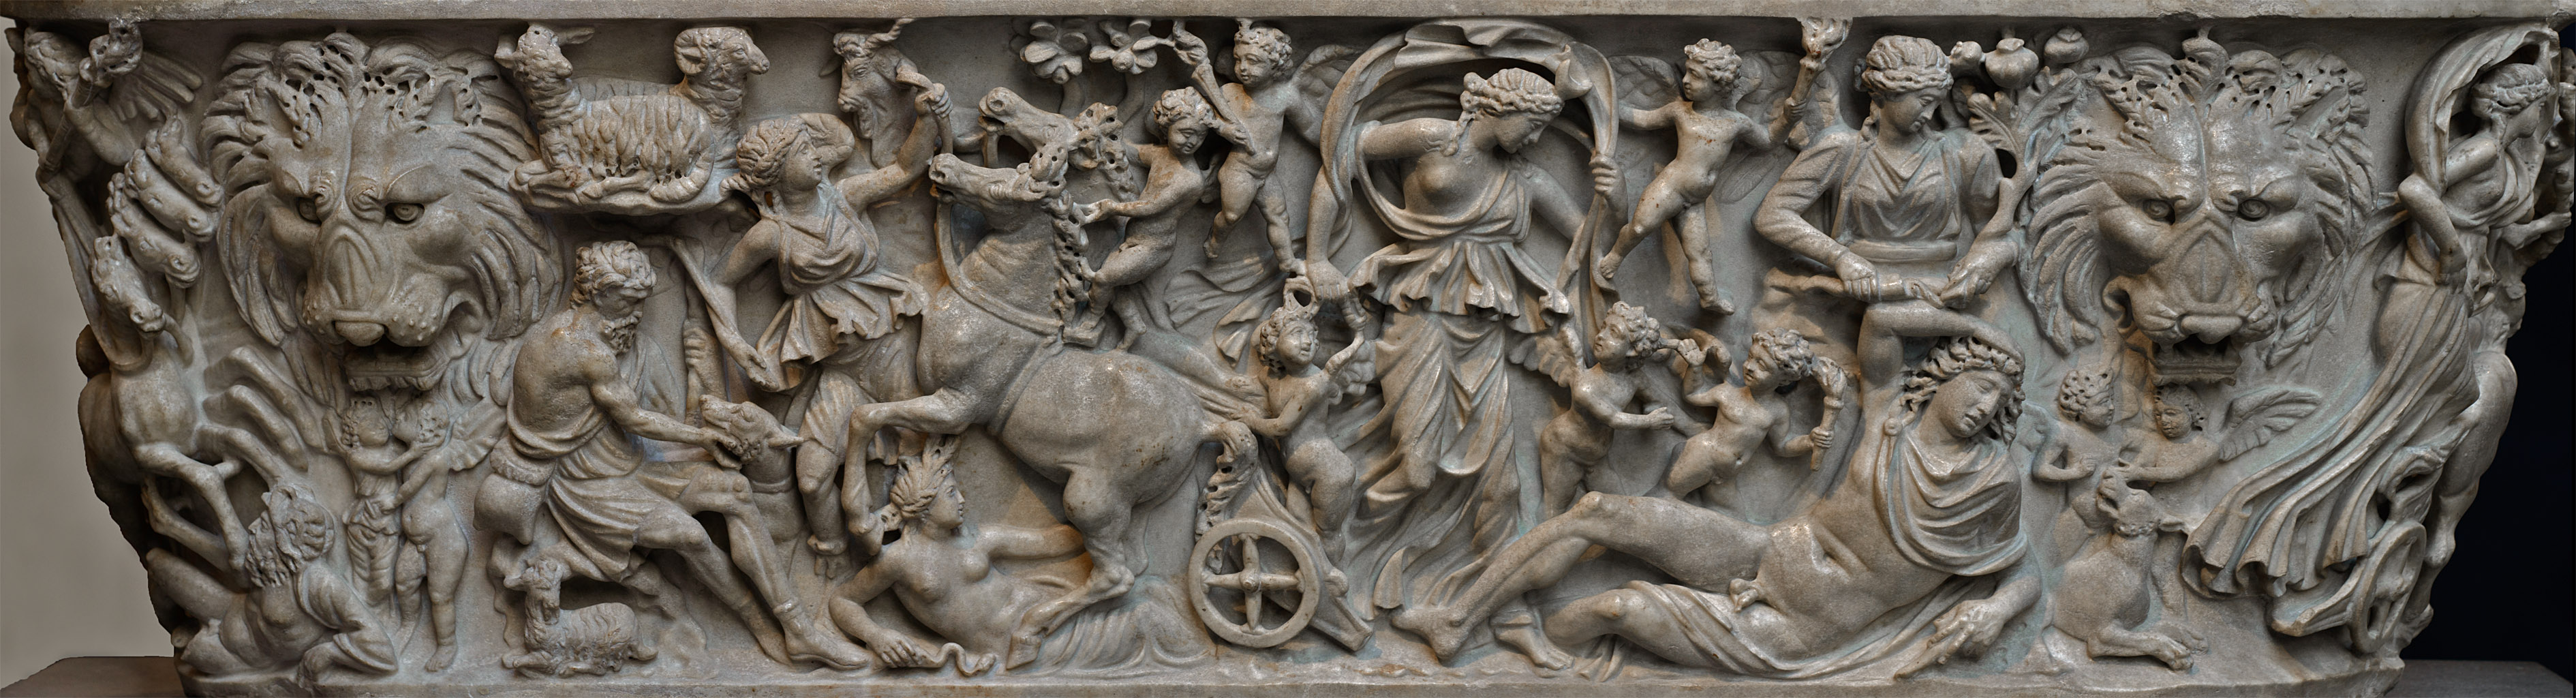 Sarcophagus with a myth of Selene and Endymion. The front relief. Marble. Early 3rd cent. CE. Inv. No. 47.100.4a. New York, the Metropolitan Museum of Art